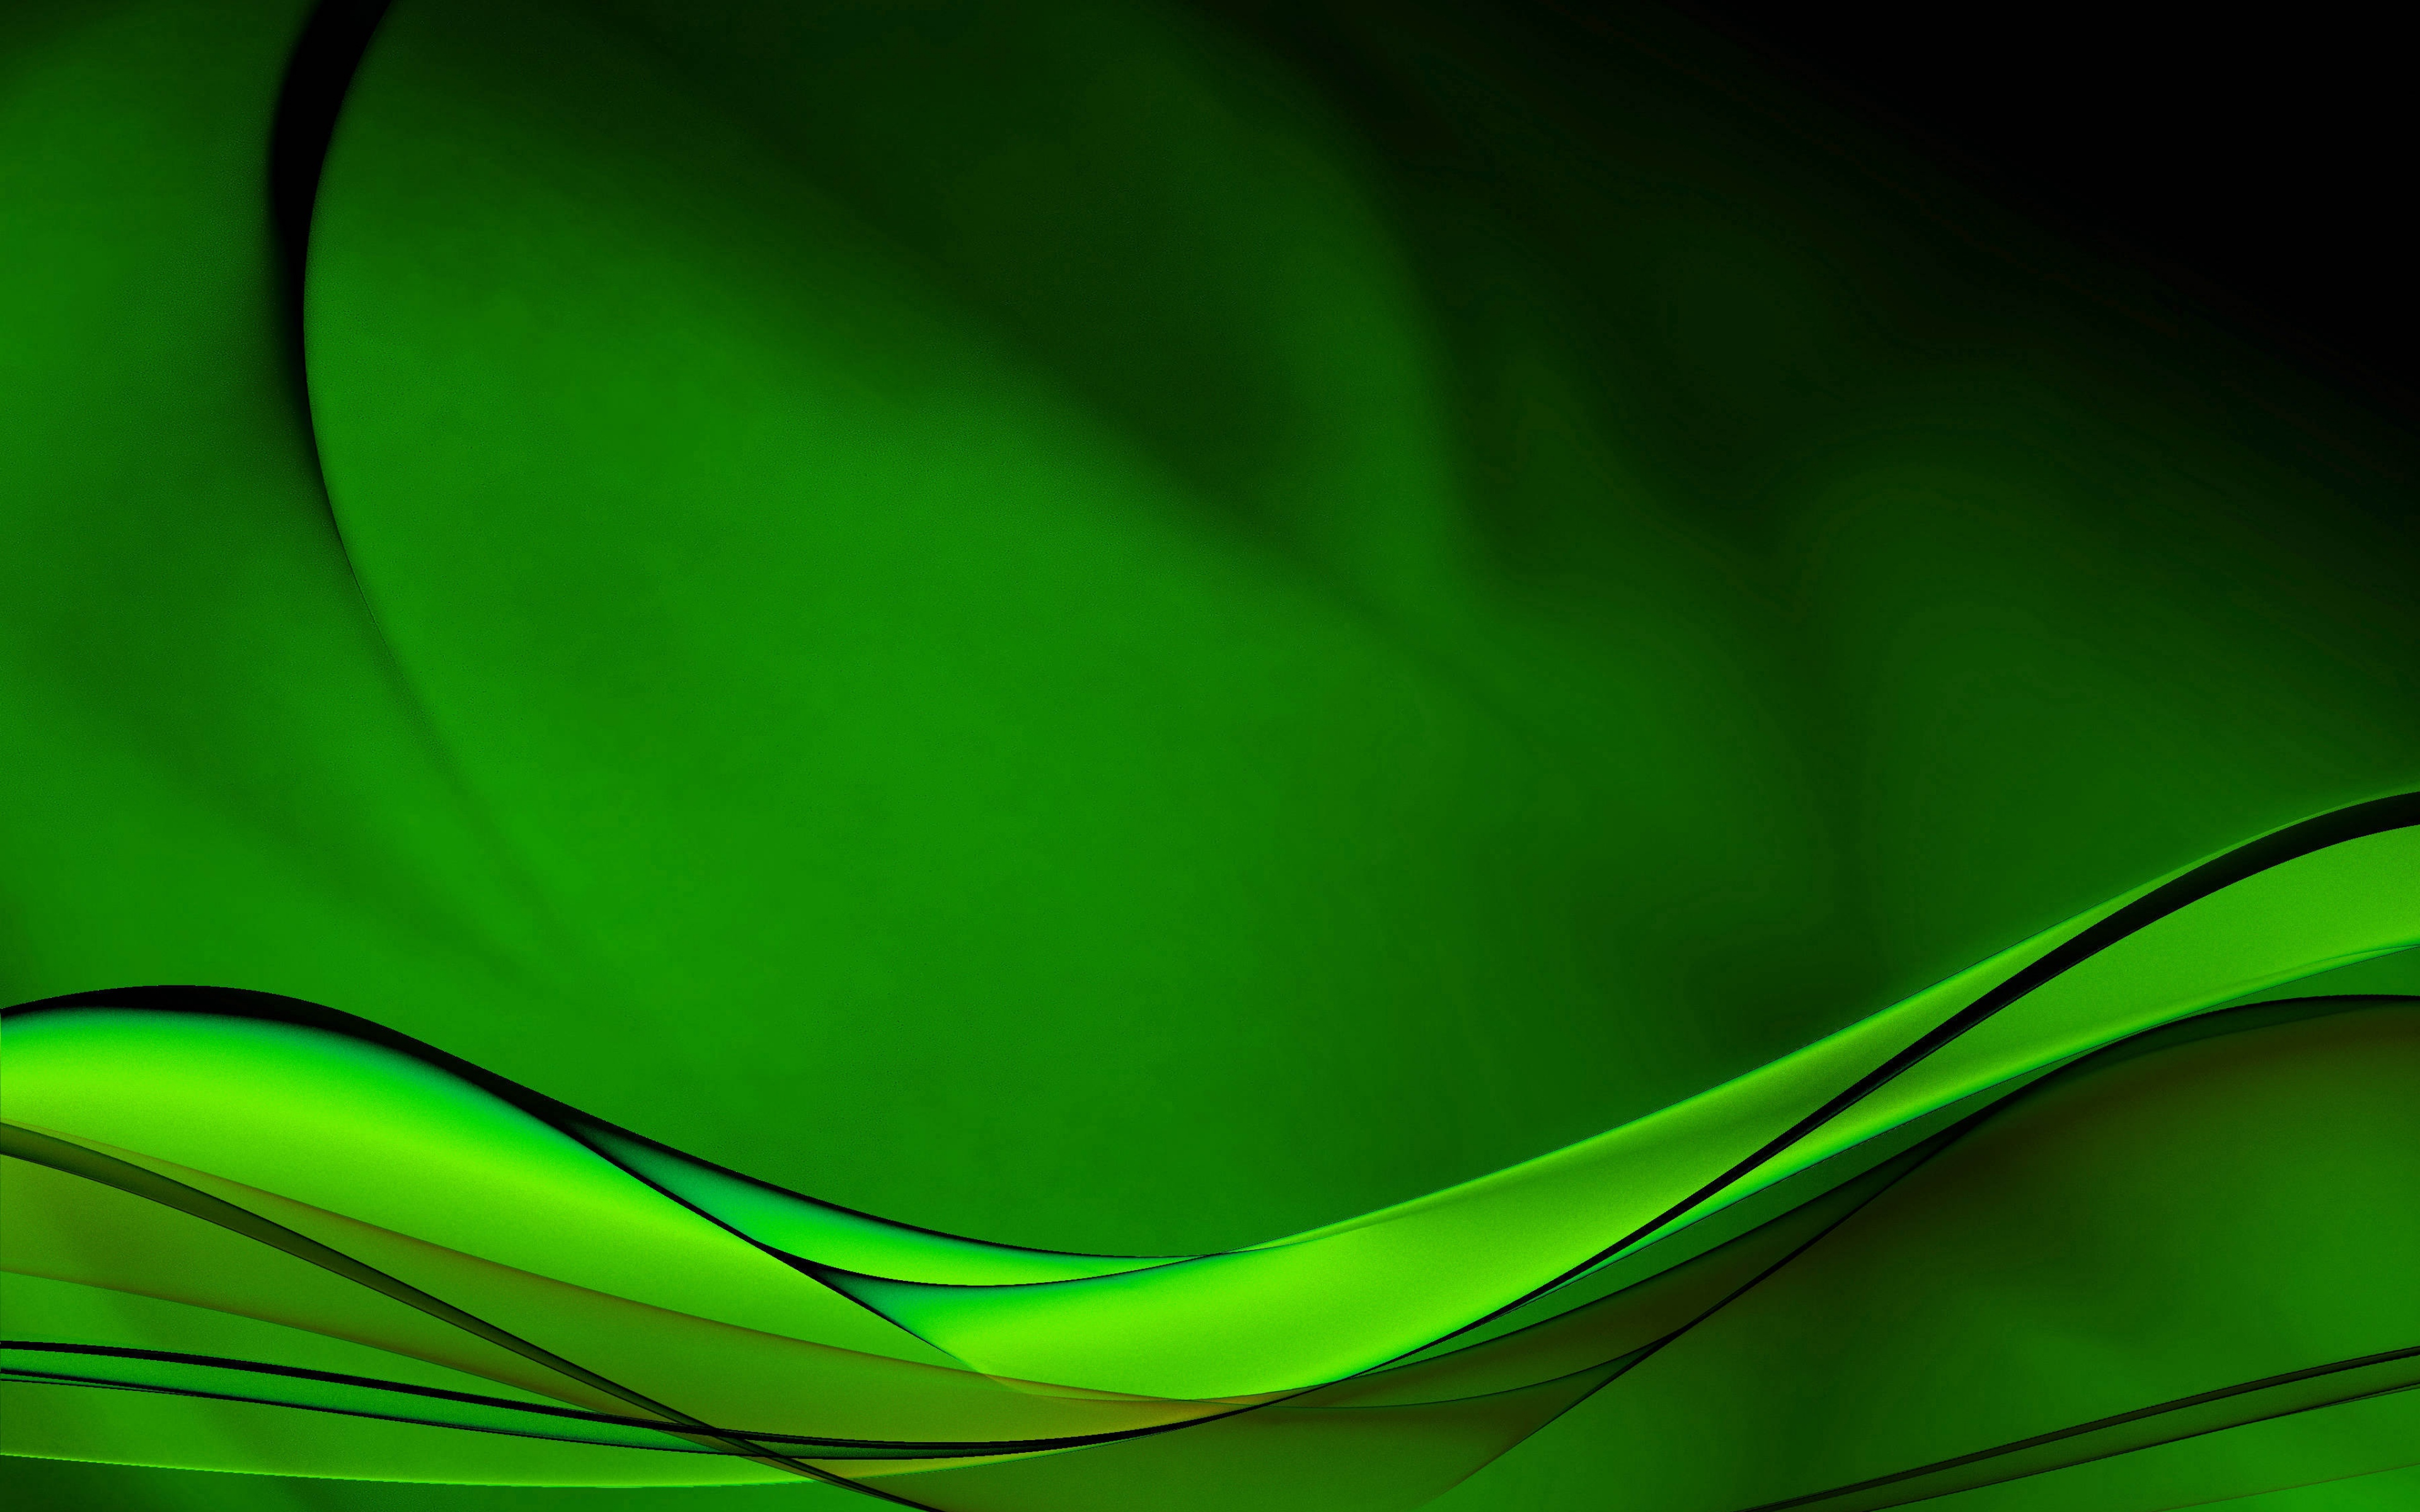 Green Background HD Wallpapers Pulse 3840x2400